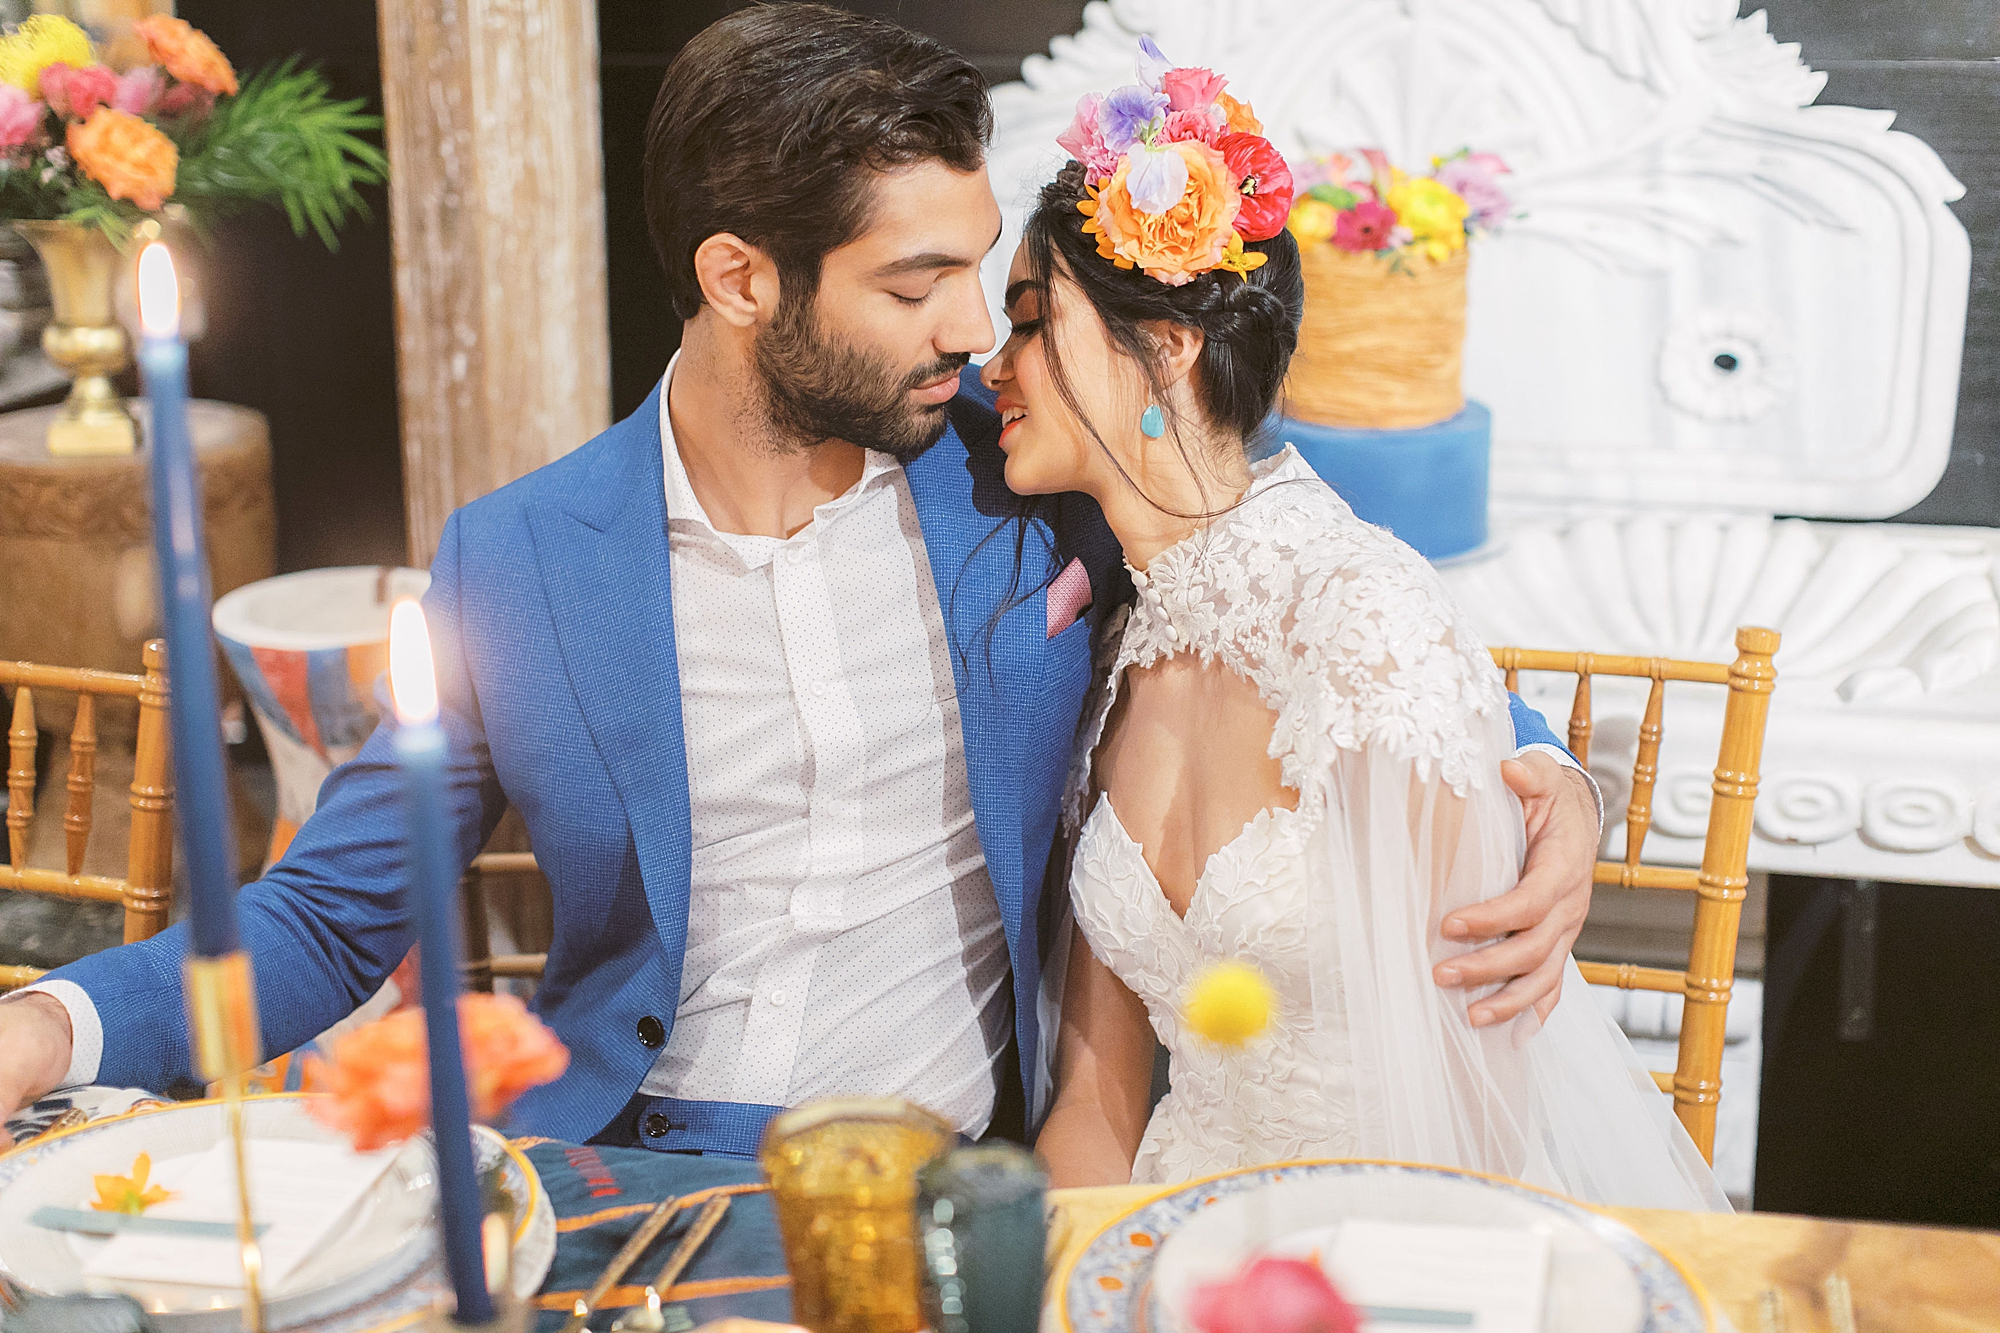 Vibrant and Colorful Frida Kahlo Inspired Wedding Photography by Magdalena Studios 0027